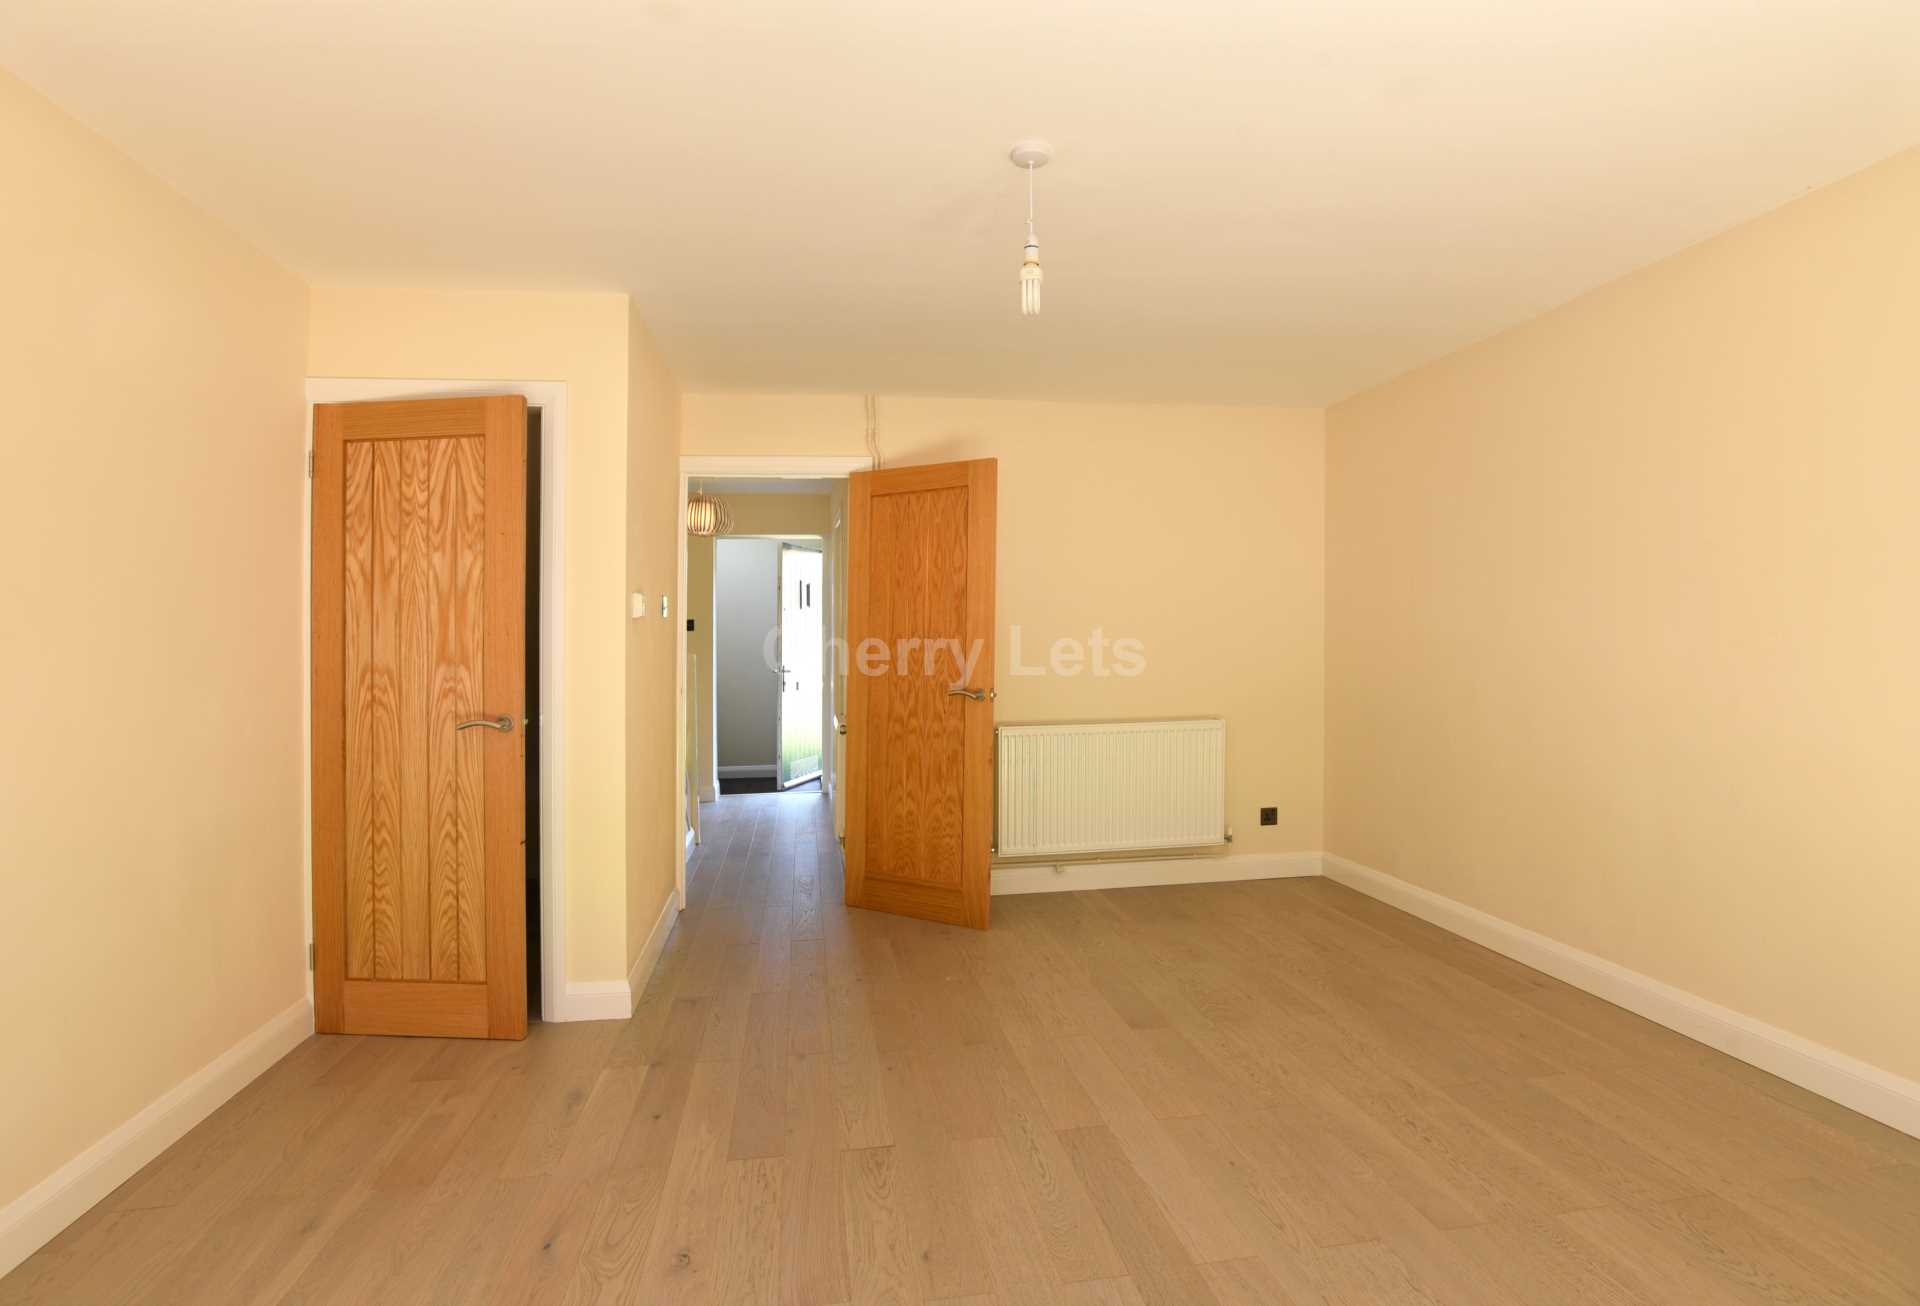 3 bed terraced house to rent in Keytes Close, Adderbury, OX17 2